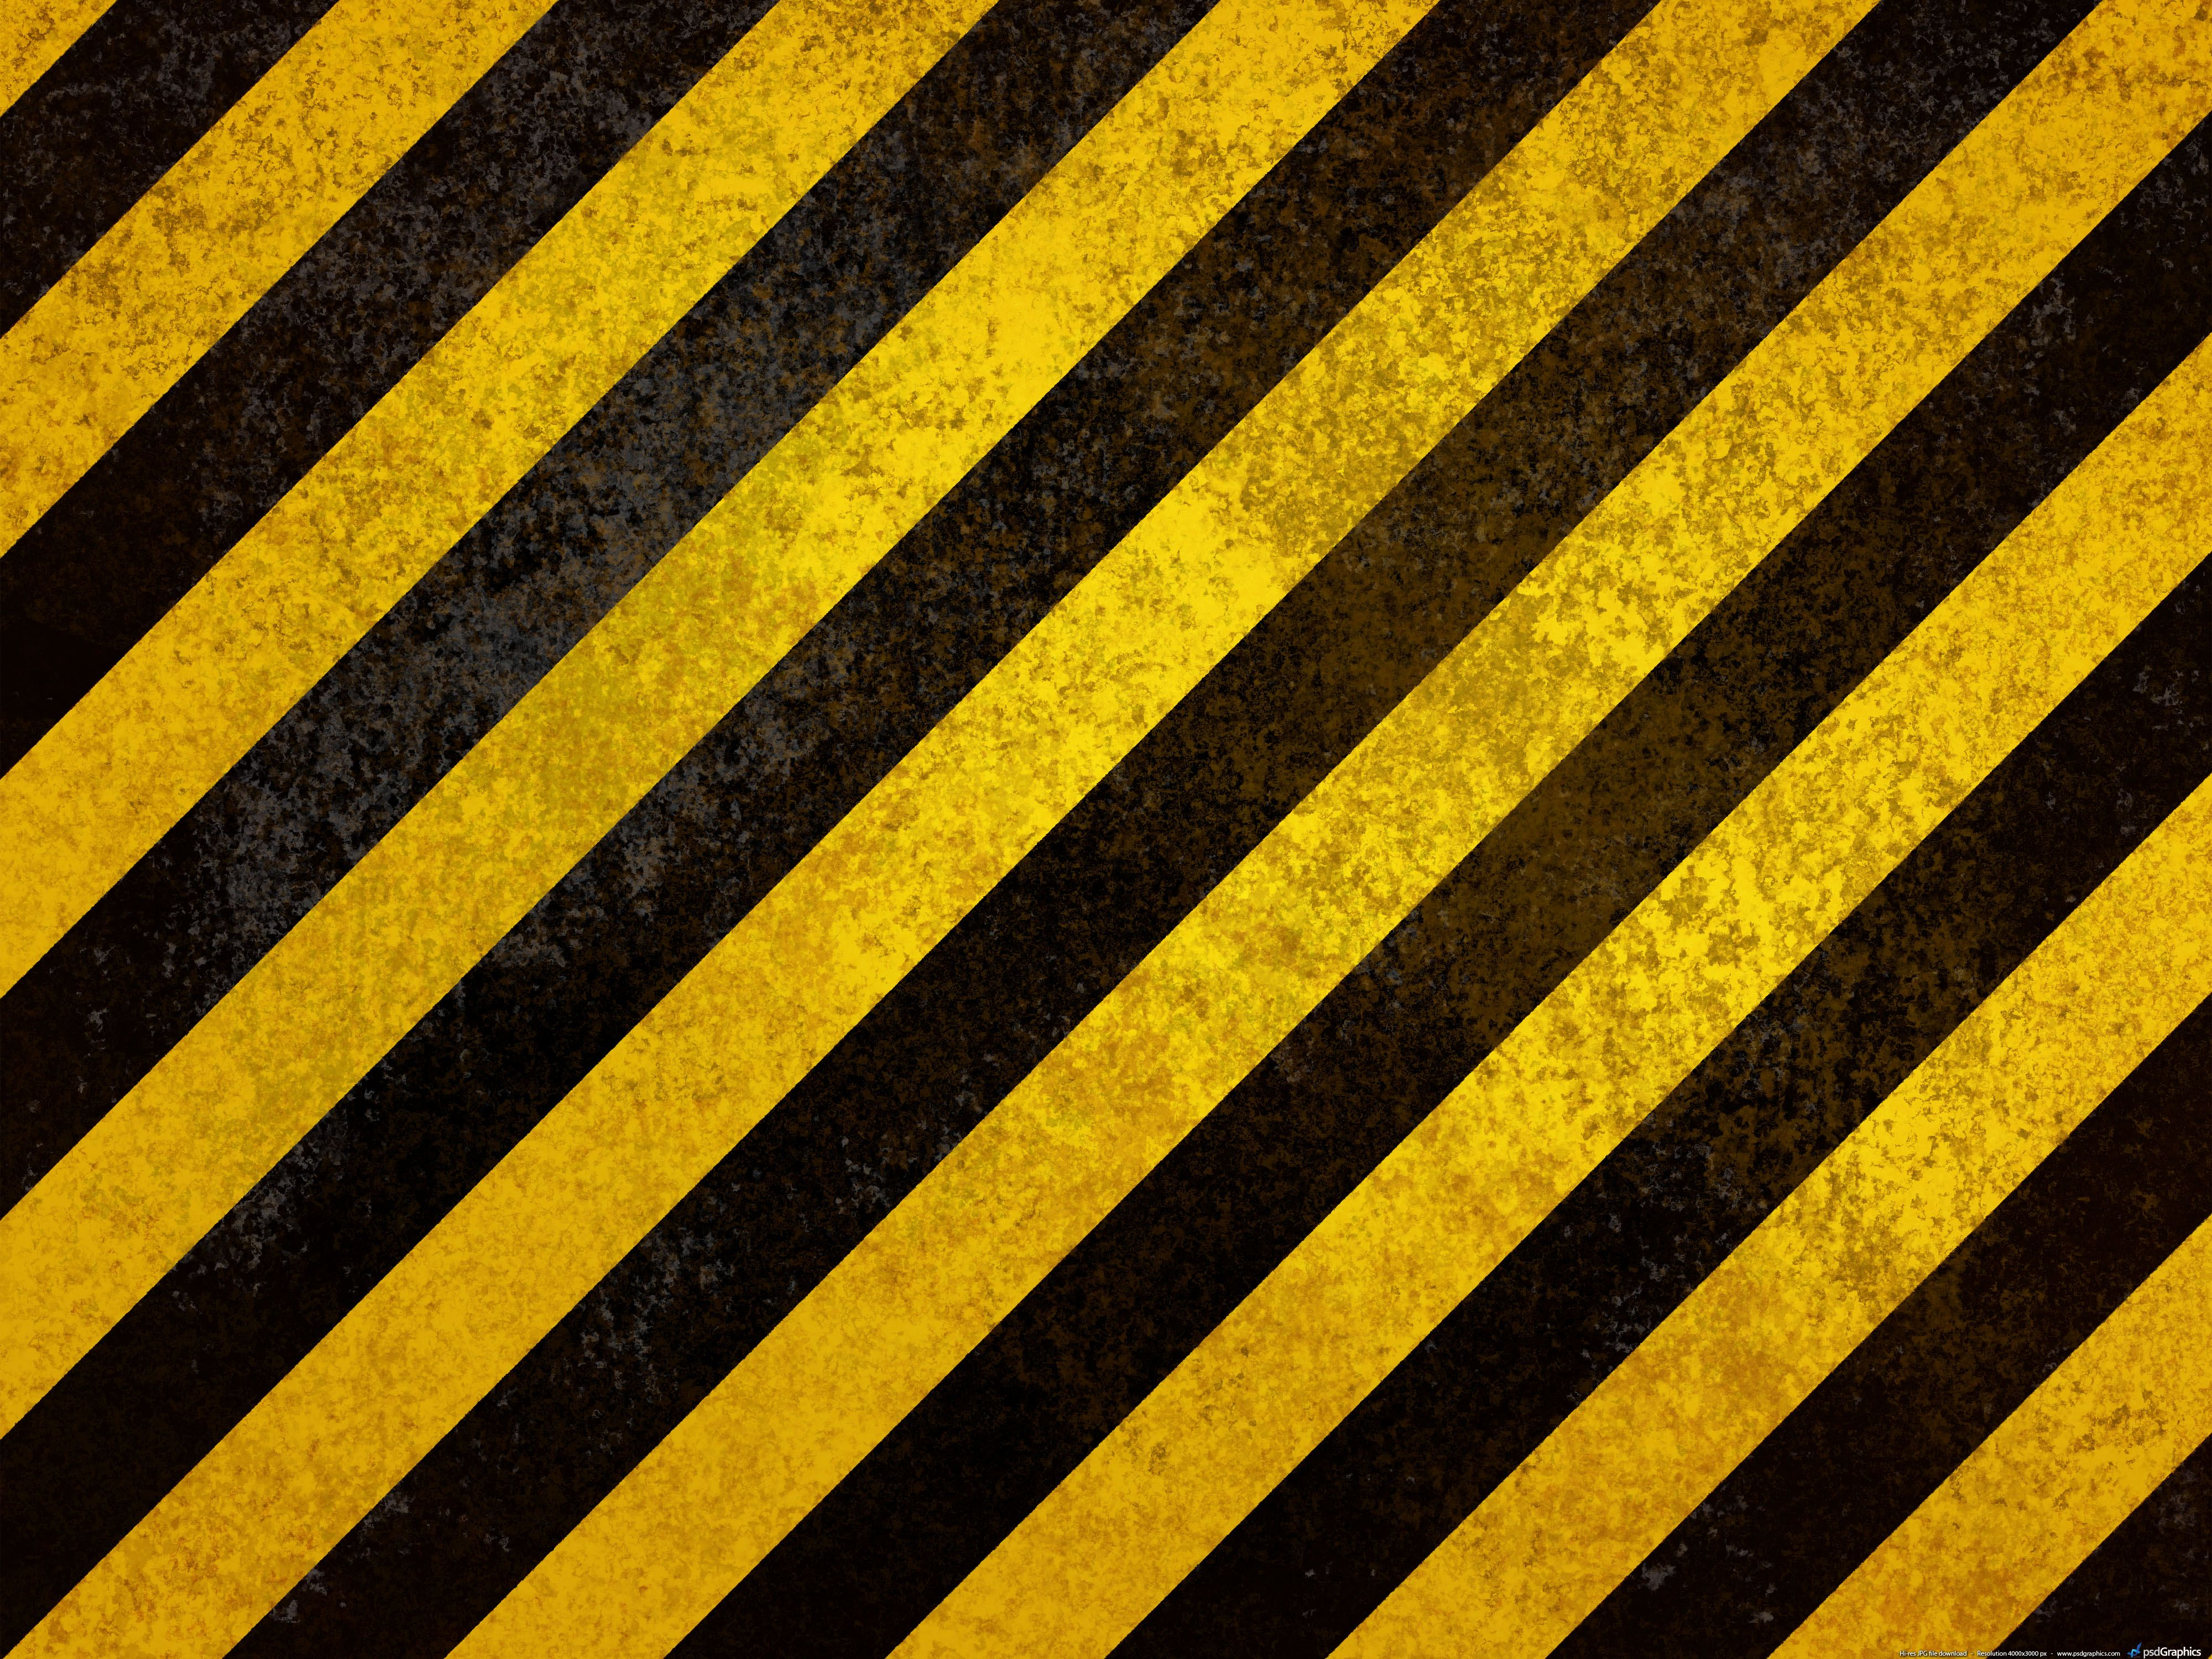 black and yellow caution stripes on metal texture | TC247 ...